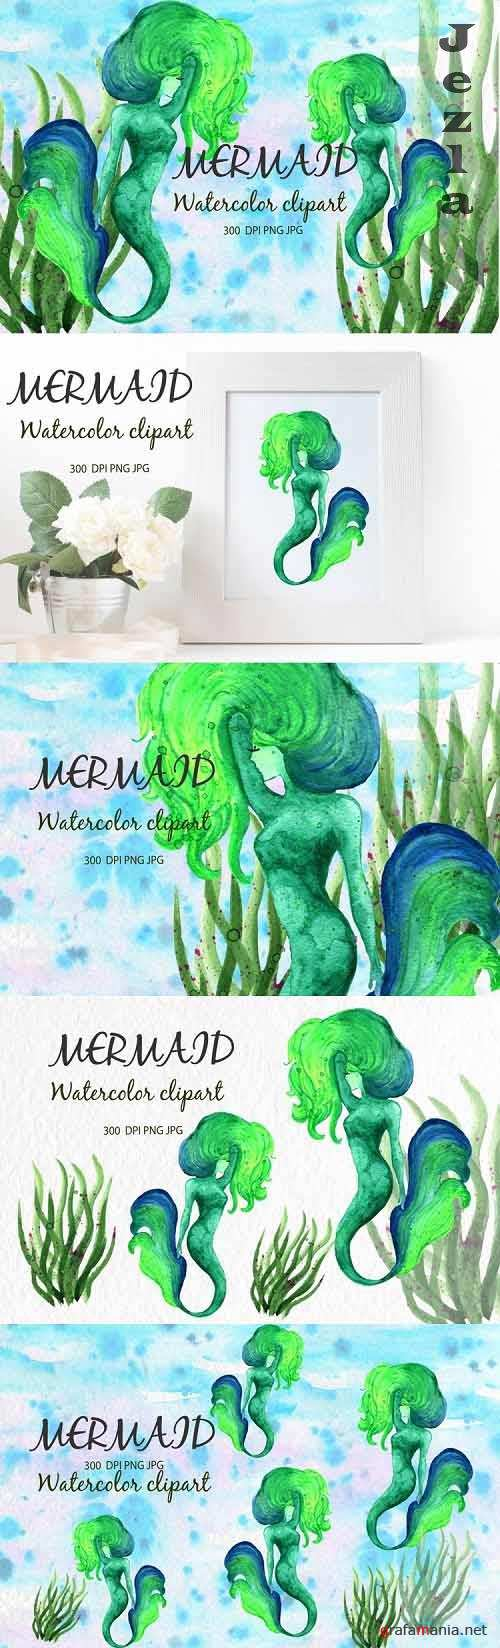 Watercolor clipart Mermaid Gute For Children's Greeting Card - 1180936